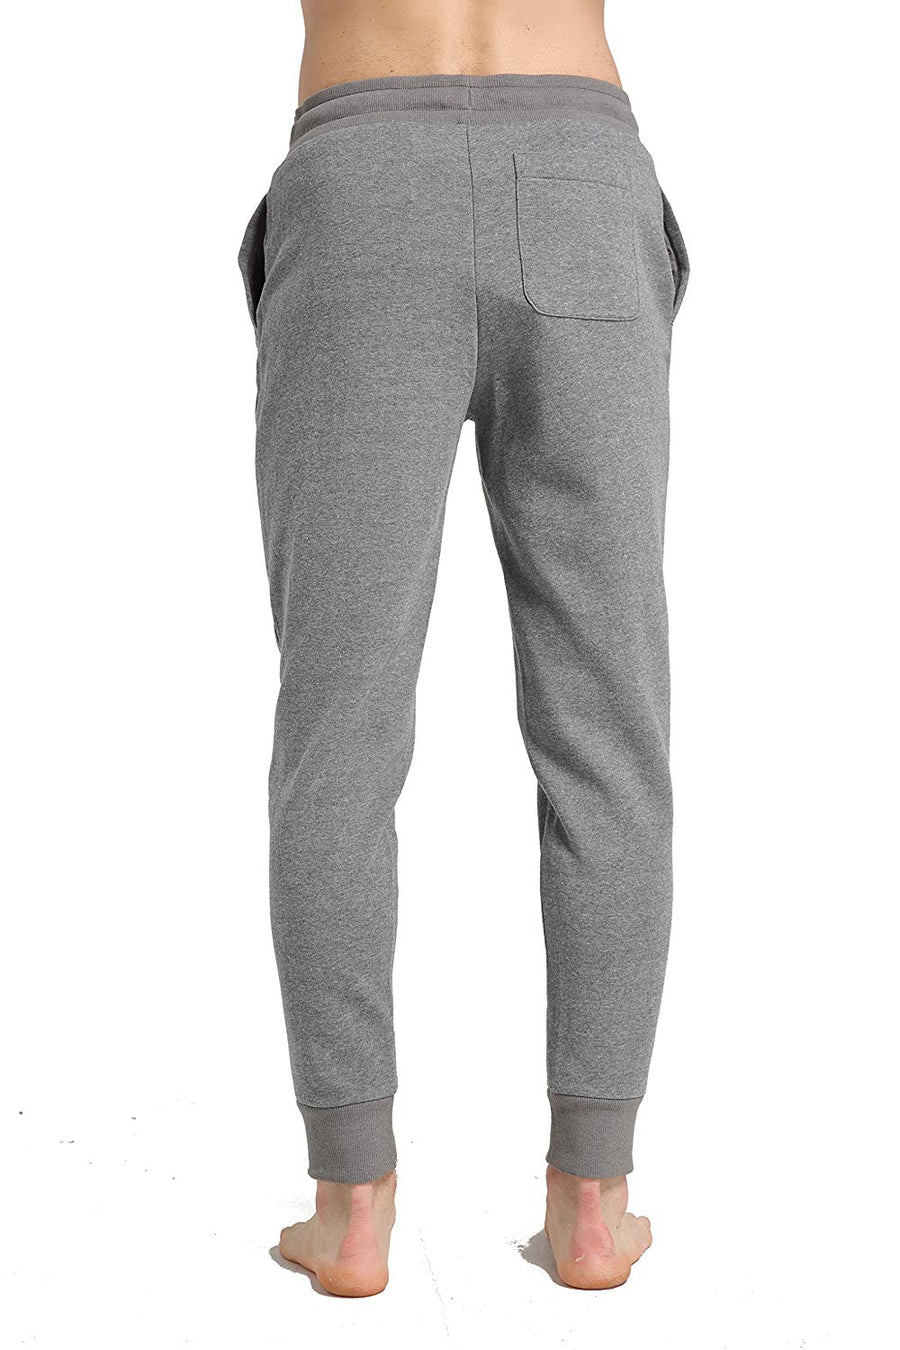 CYZ Men's Jogger Sweatpants Tracksuit Bottoms Training Running Trousers